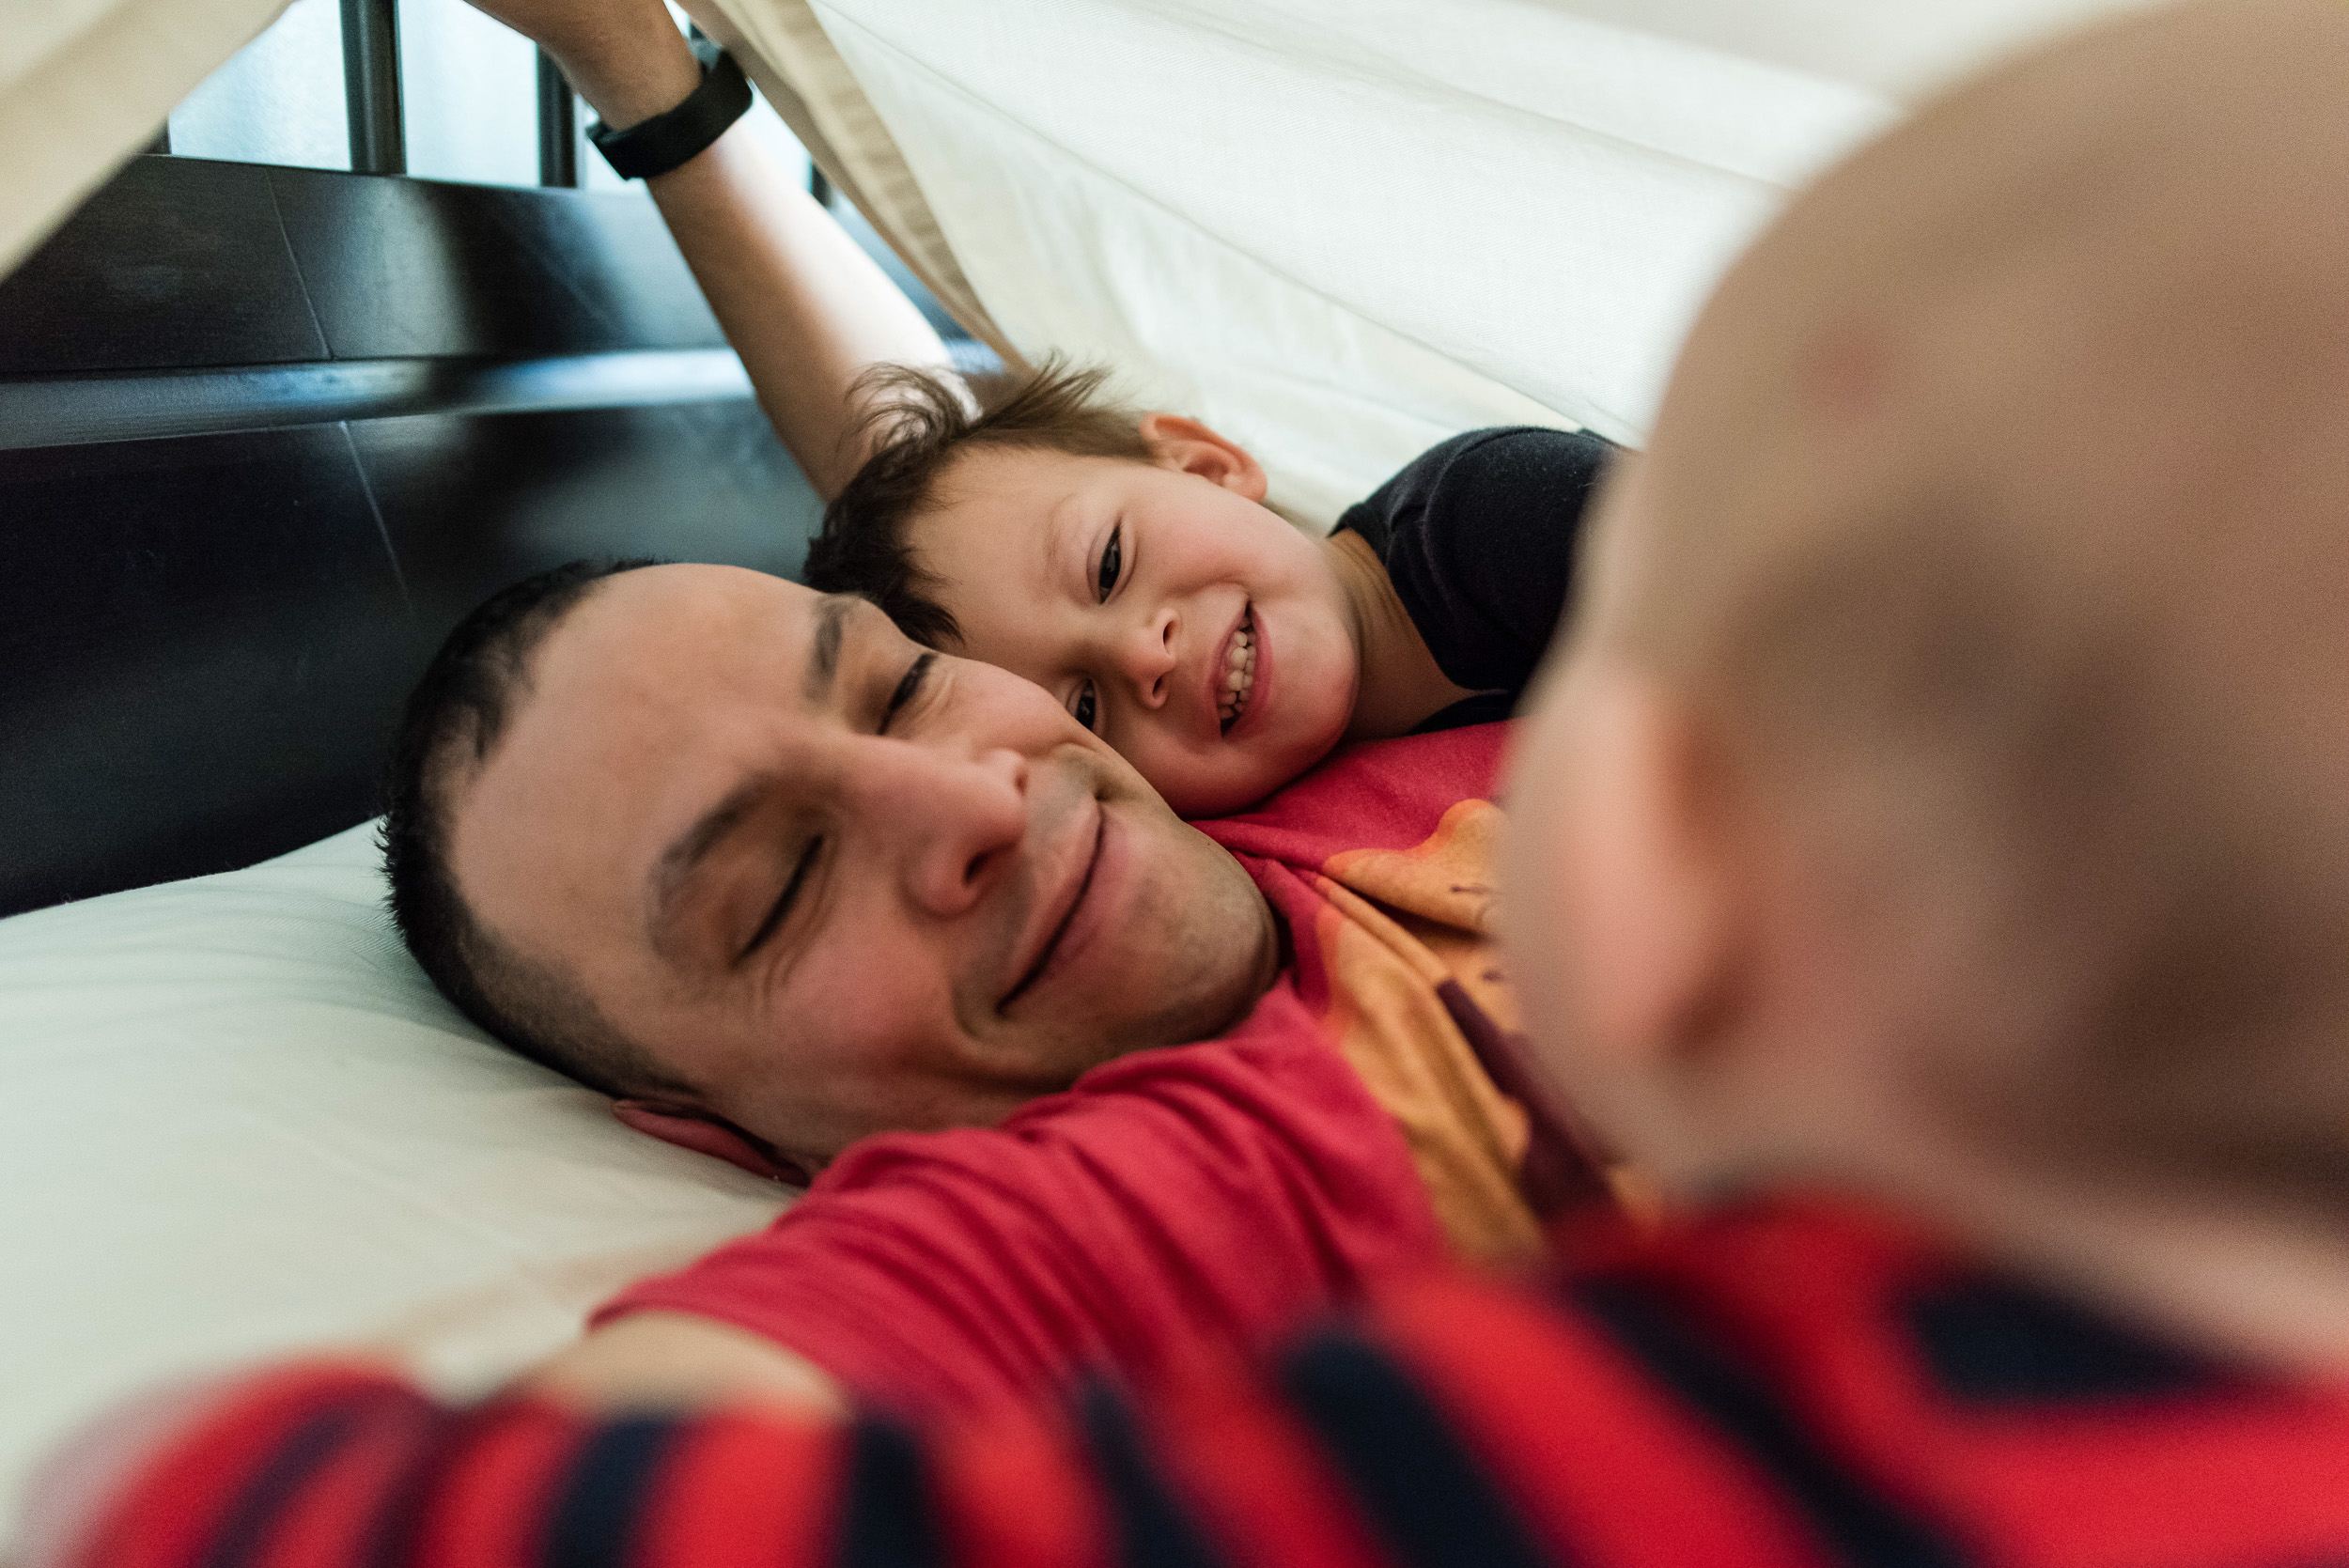 father-and-sons-playing-under-sheet-by-Northern-Virginia-Family-Photographer-Nicole-Sanchez.jpg